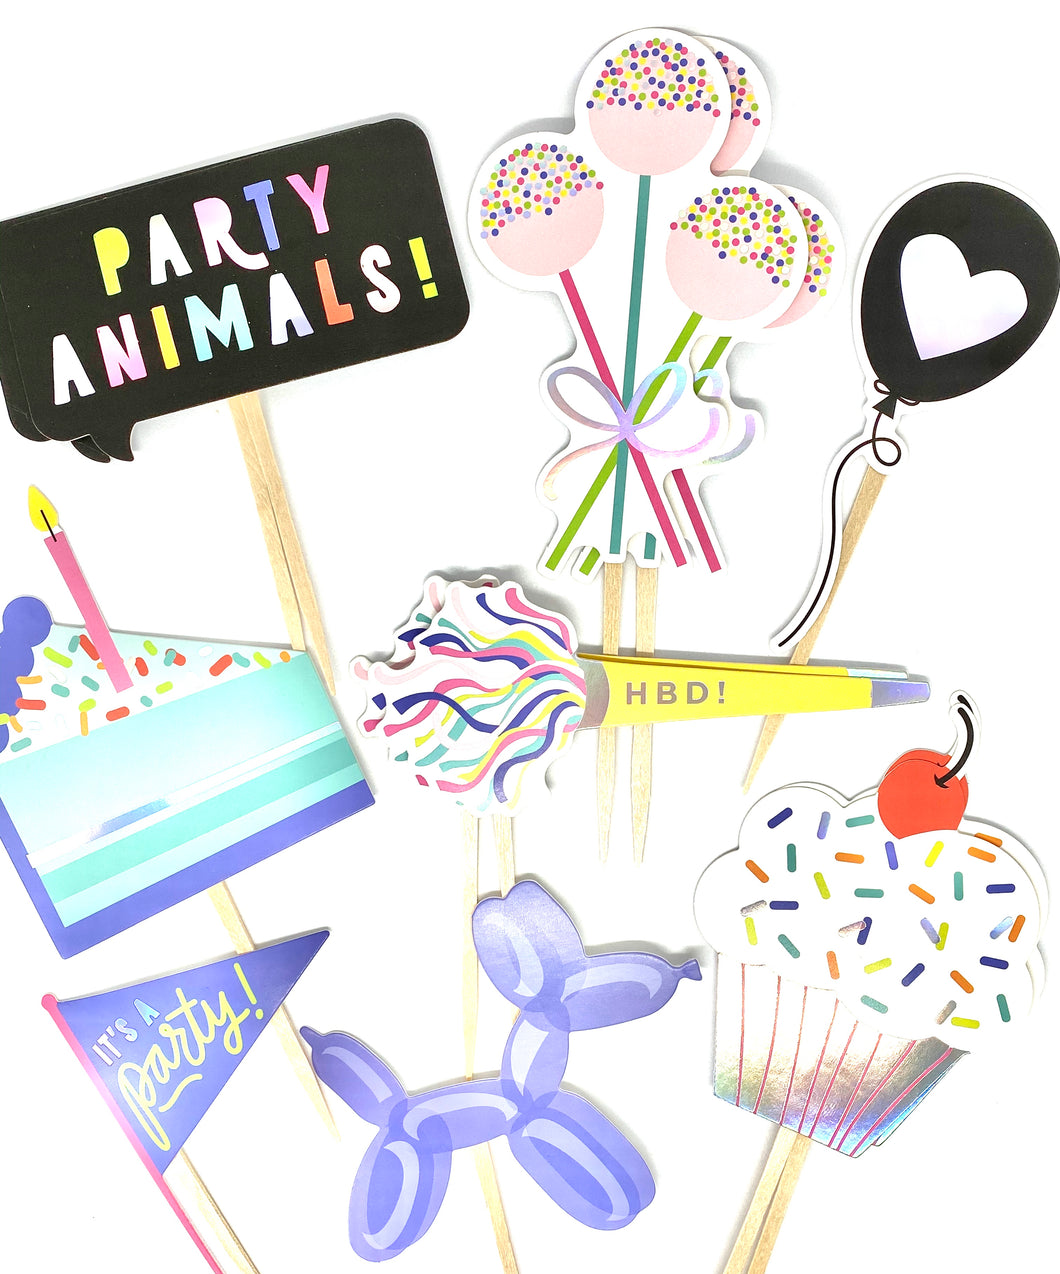 Party Animals Cupcake Toppers. Birthday Cupcake Toppers. Birthday Party Decor. Birthday Sticker Set. Balloons. Balloon Dog. Cherry on Top.